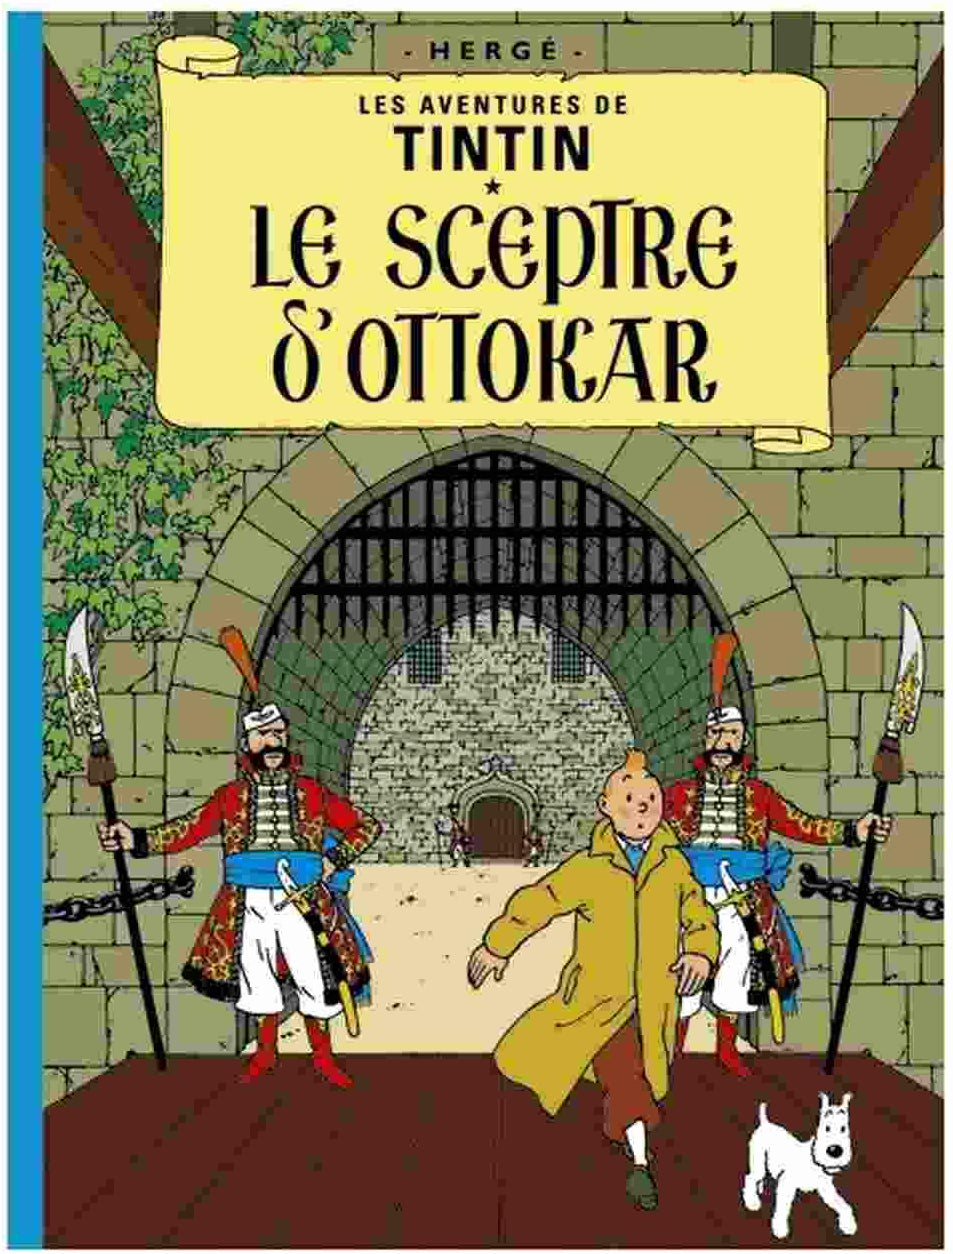 FRENCH ALBUM #08: King Ottokar's Sceptre